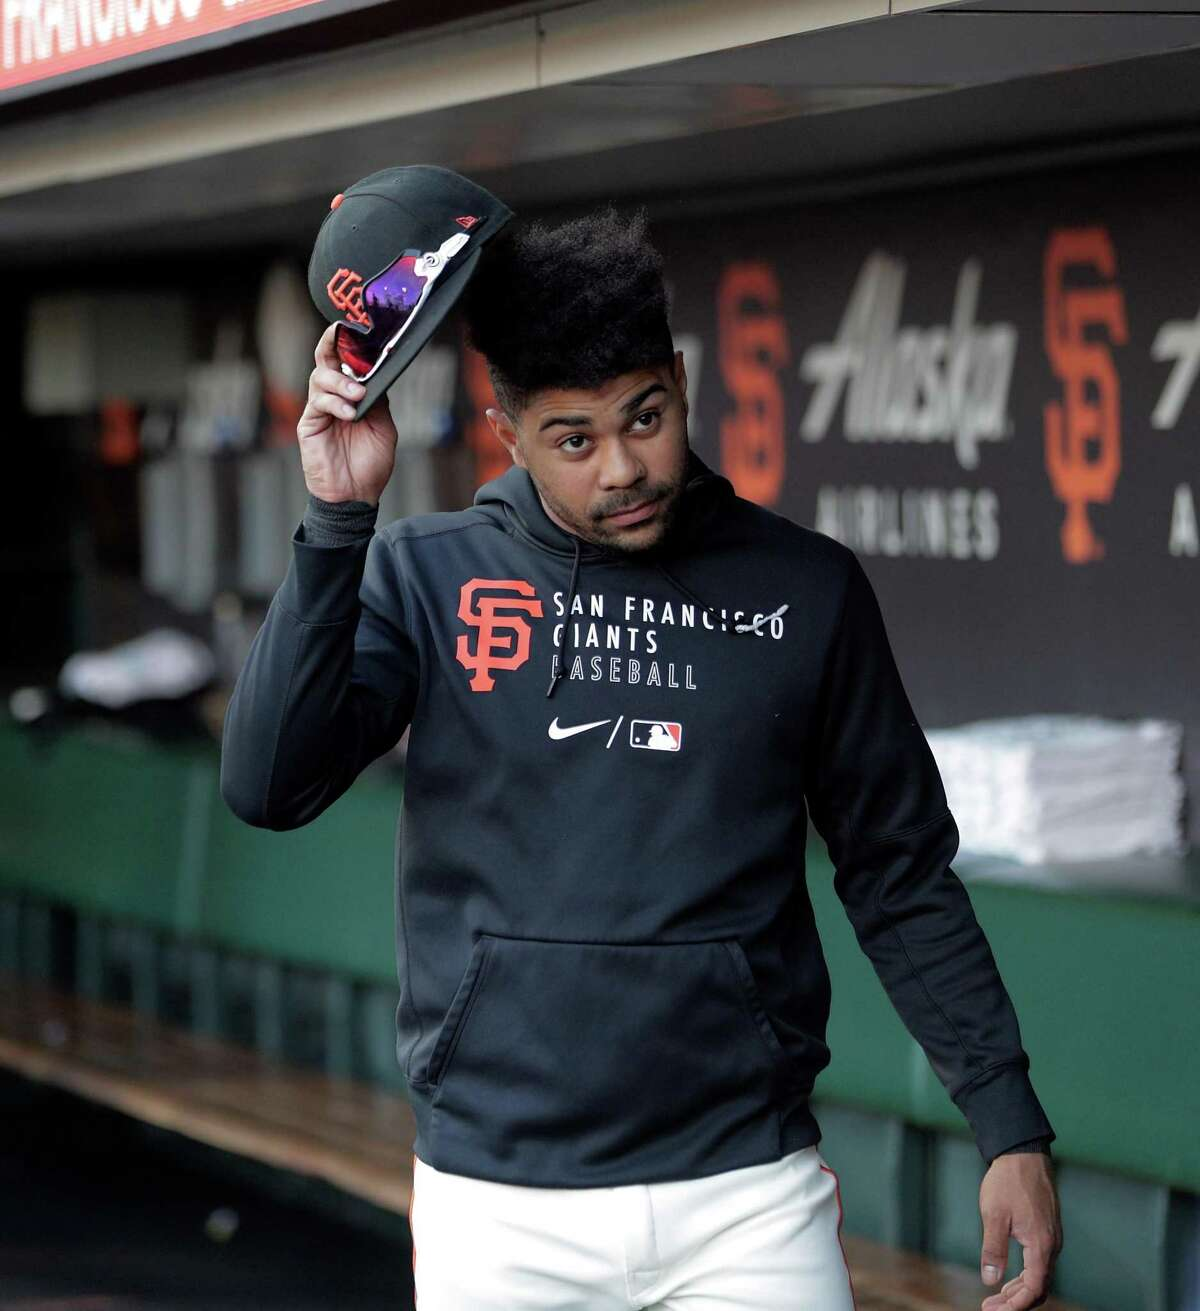 LaMonte Wade Jr. (31) in the dugout before the San Francisco Giants played the Los Angeles Dodgers at Oracle Park in San Francisco, Calif., on Wednesday, July 28, 2021.